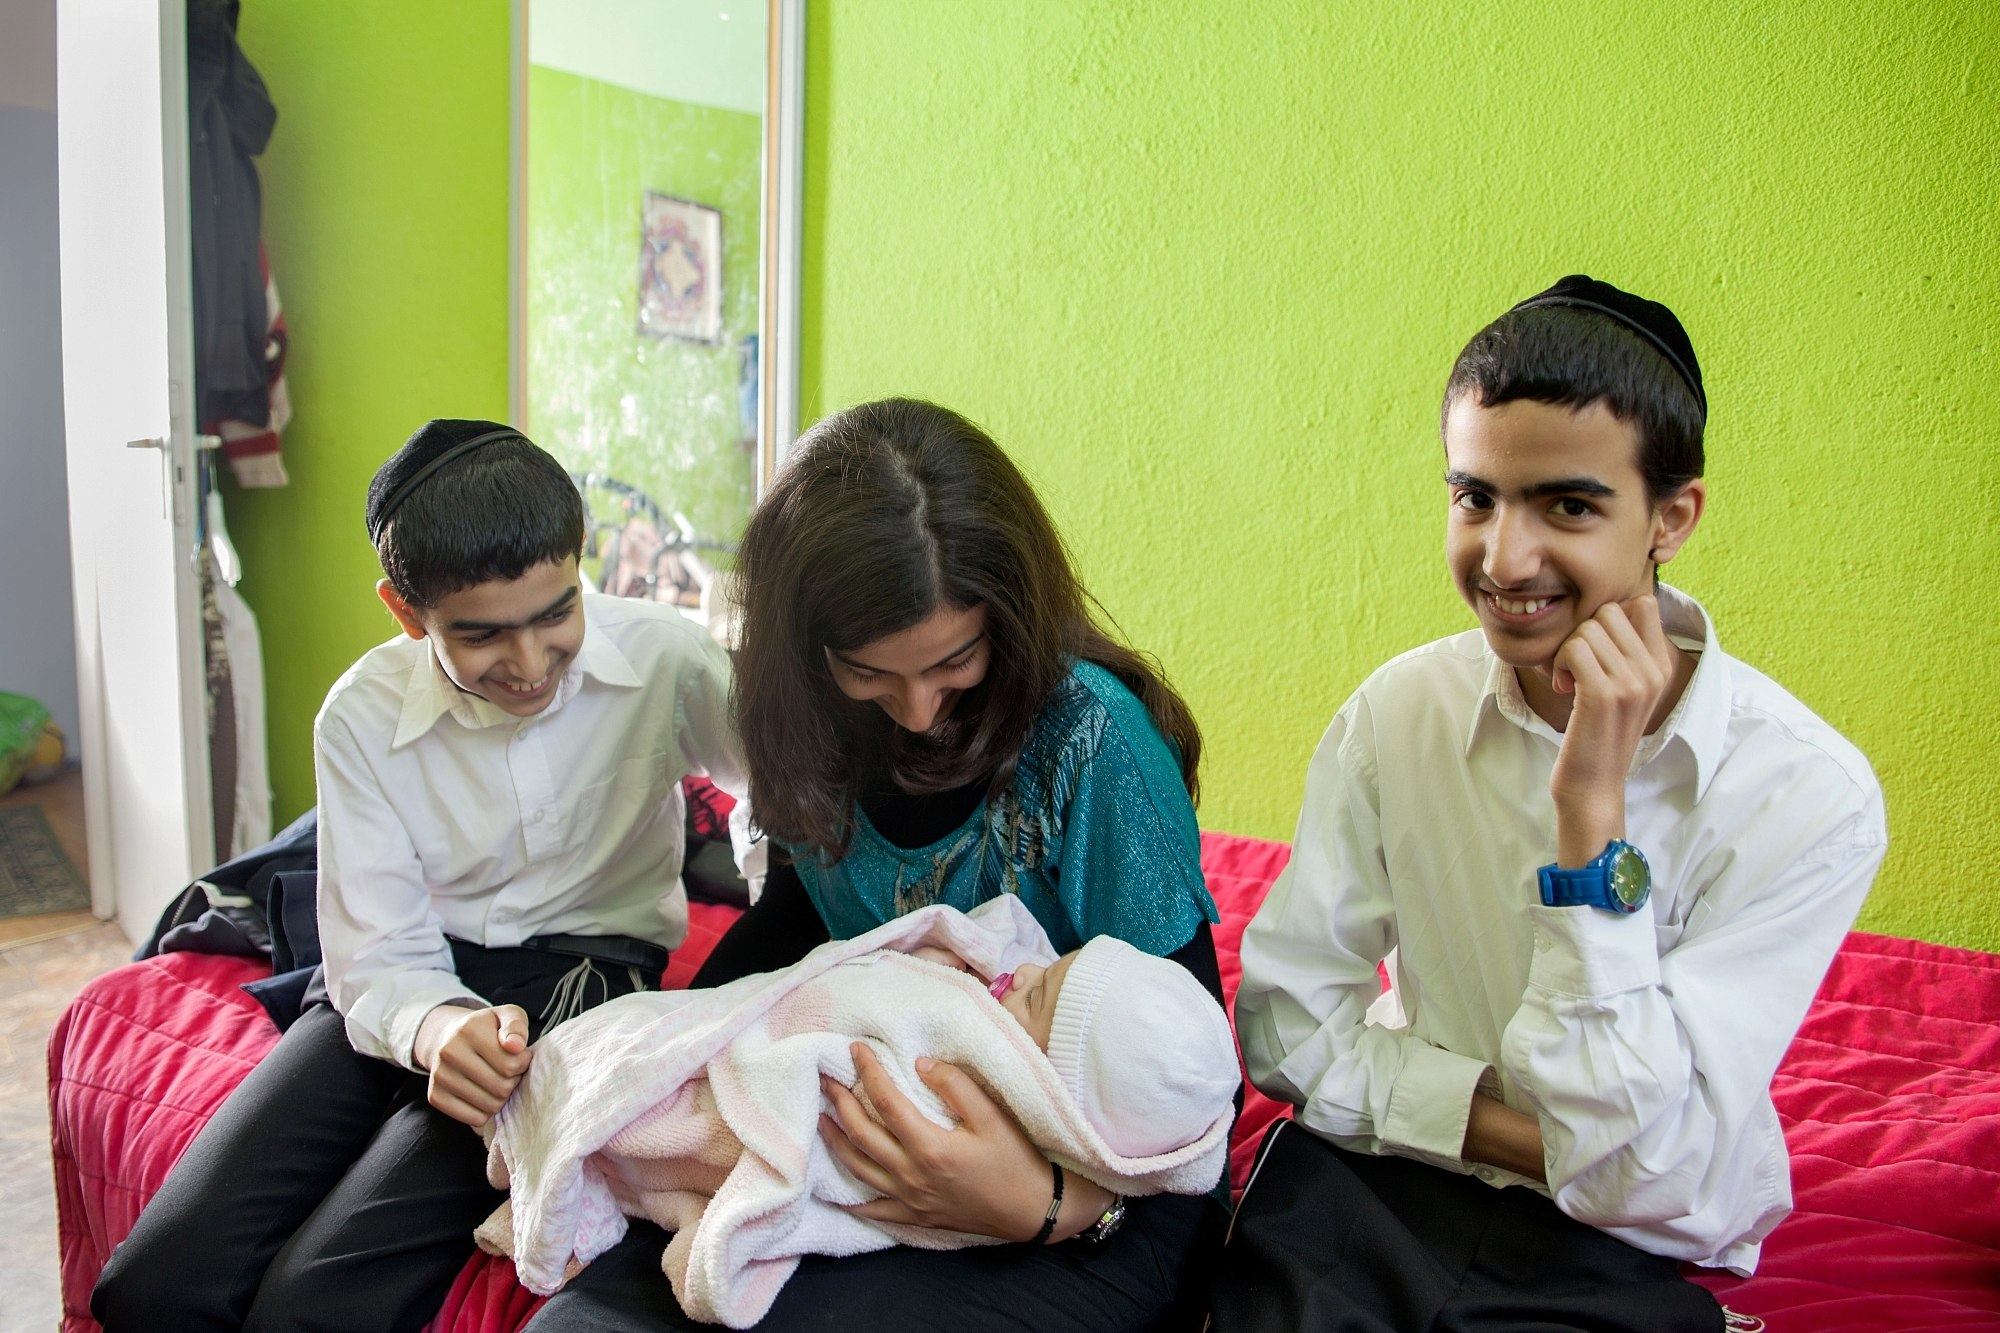 Rabbi family Daus with their newborn child,  photo by Benyamin Reich